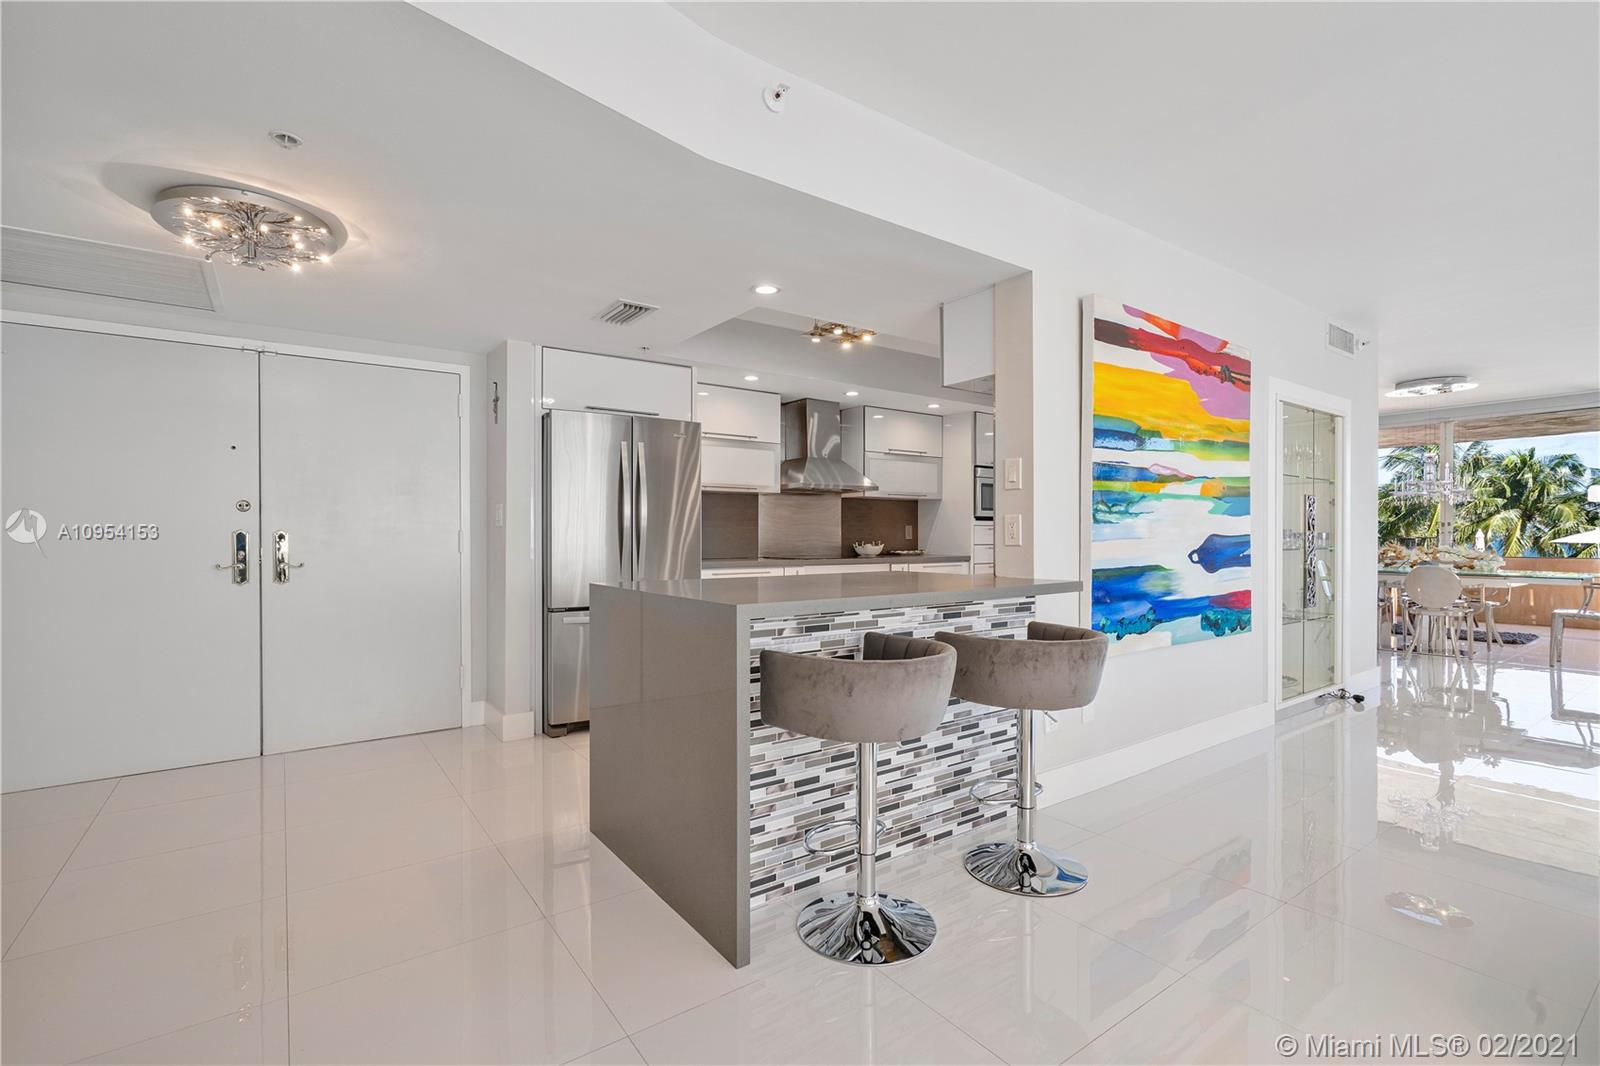 Tiffany #102 - 10175 Collins Ave #102, Bal Harbour, FL 33154